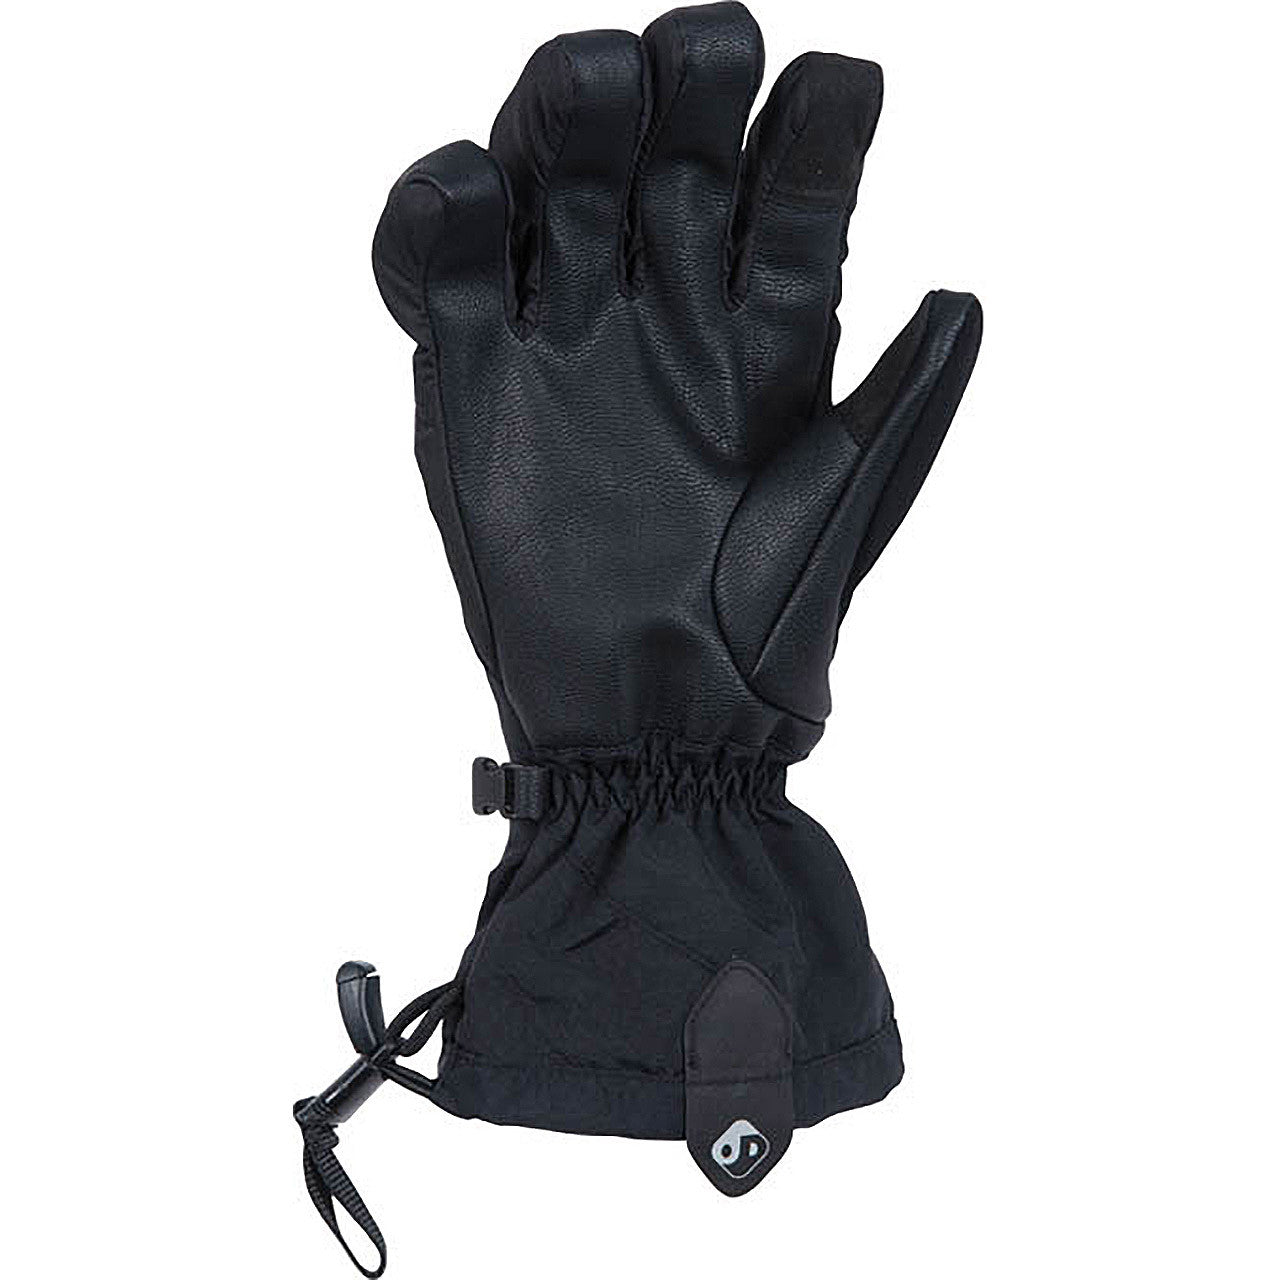 Outdoor Designs Summit Glove - Black